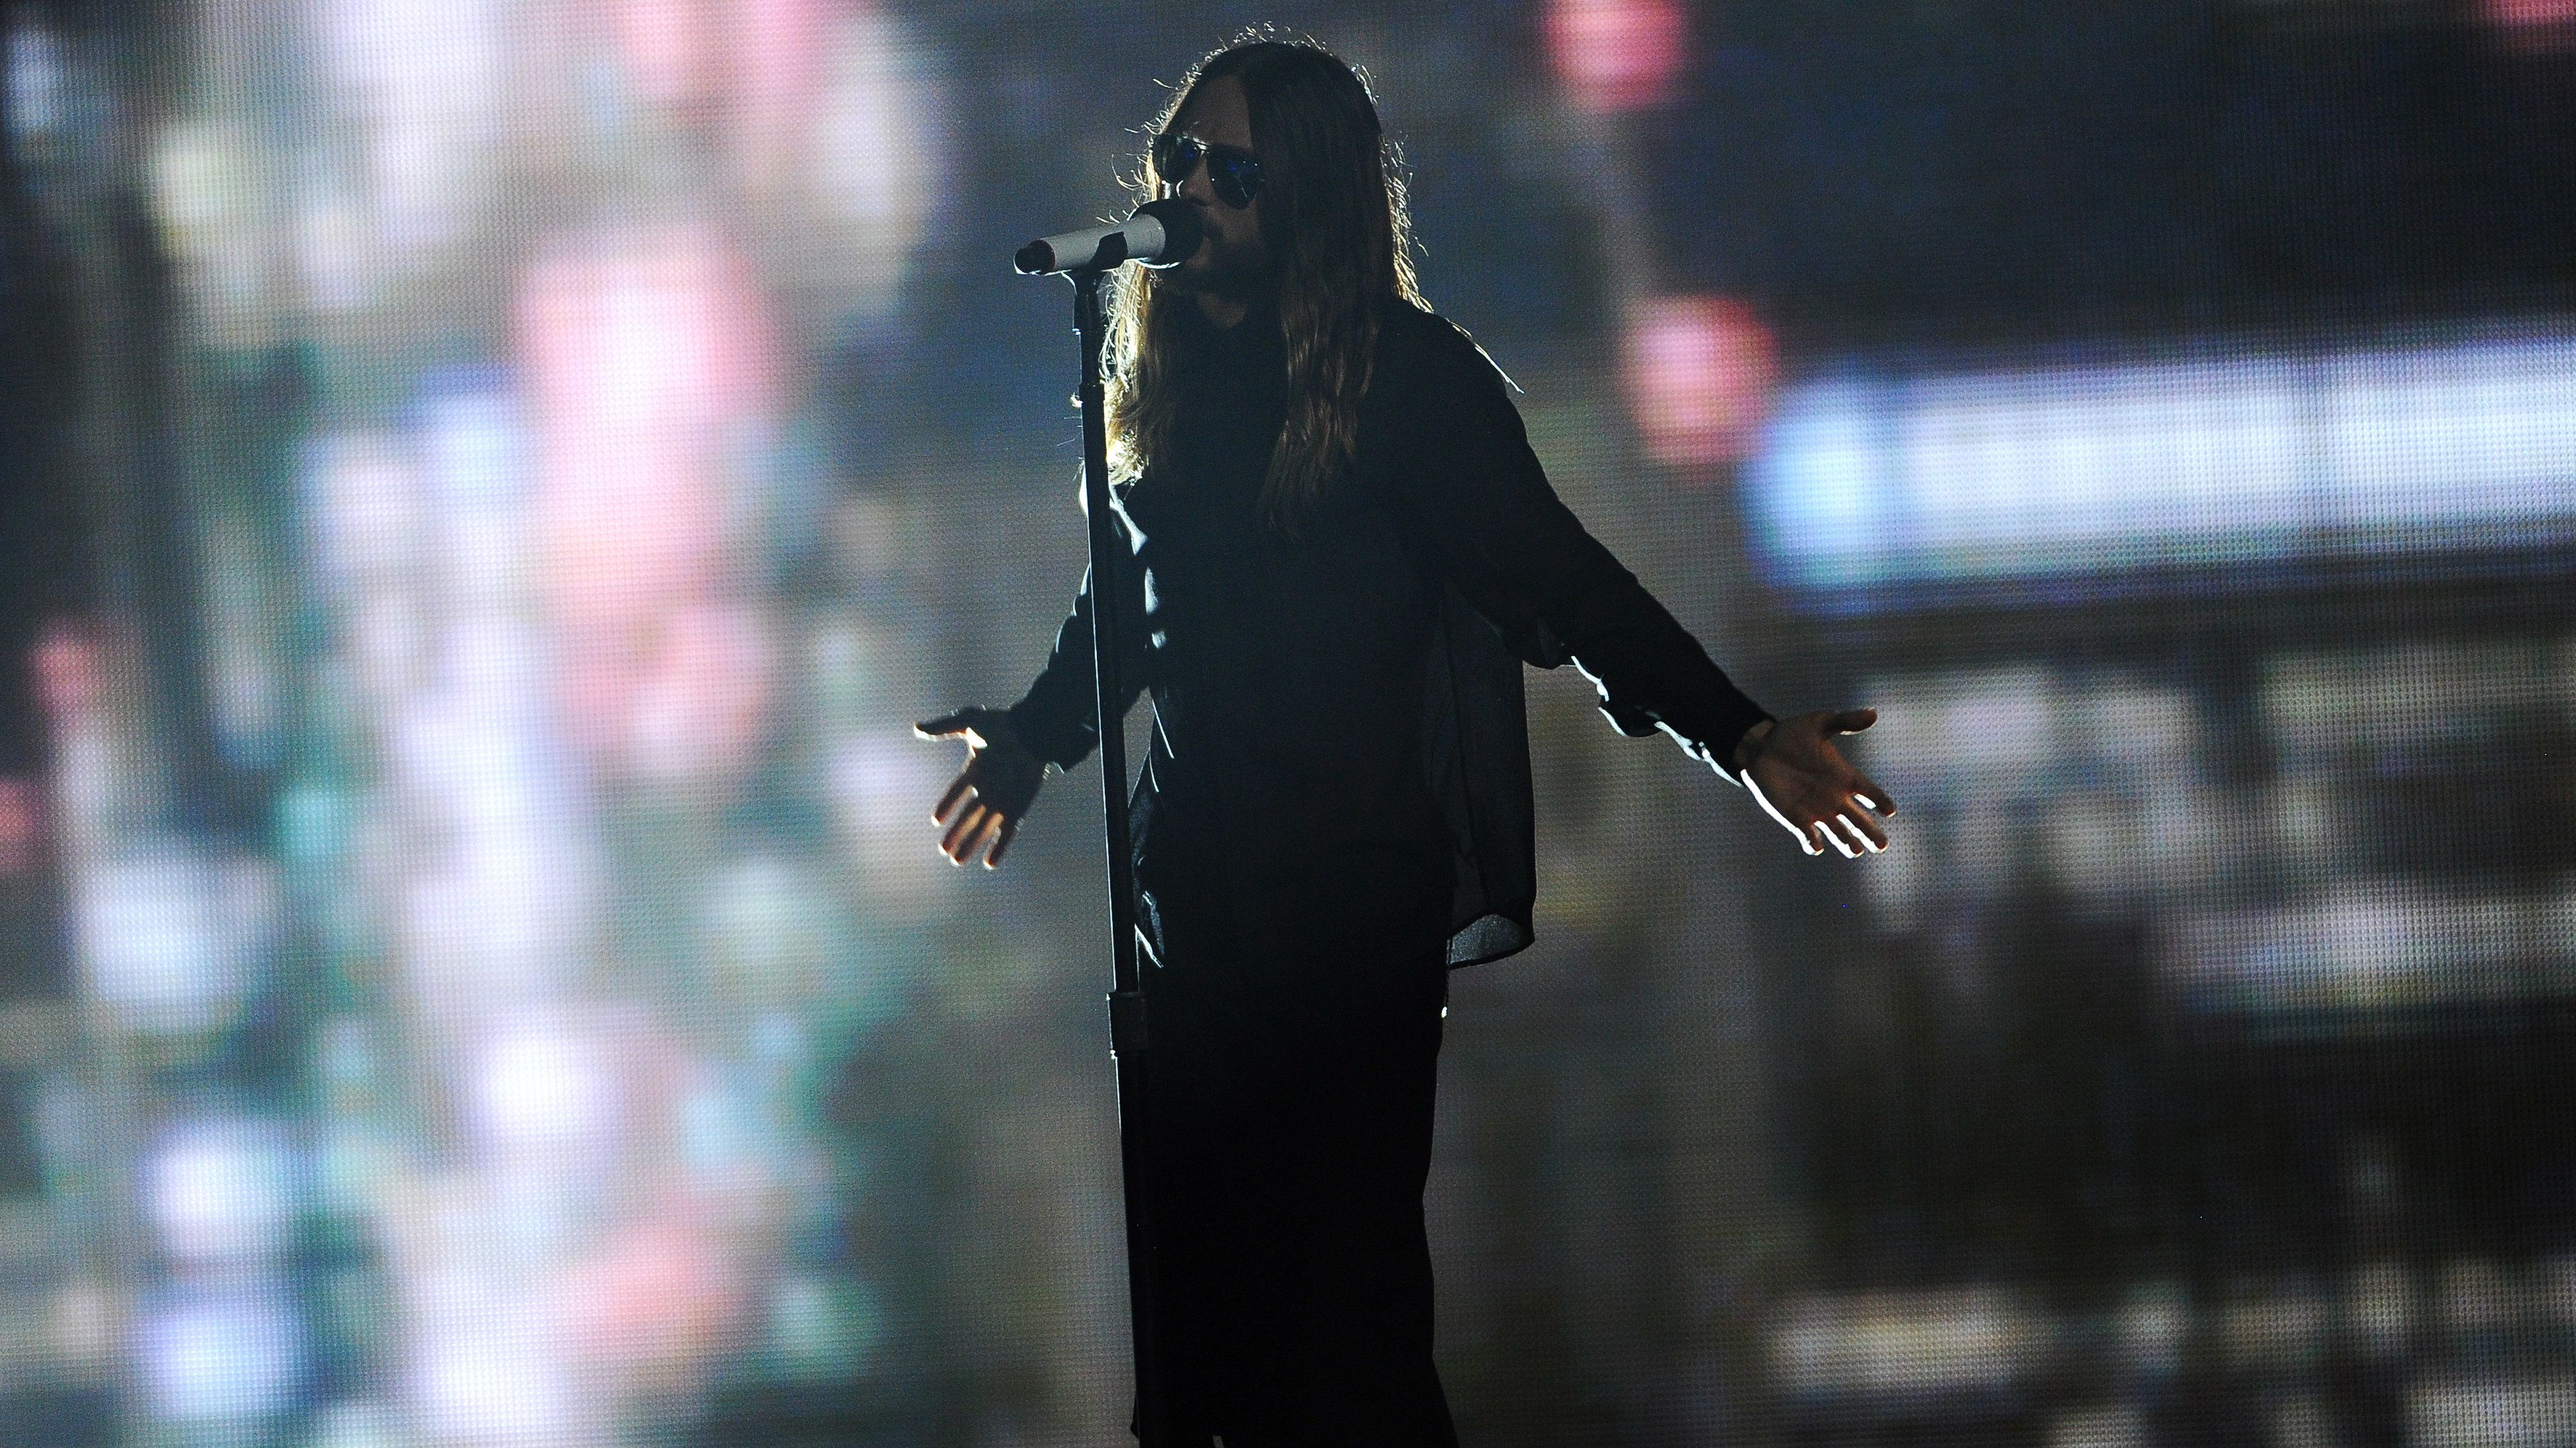 ared Leto performs at the iHeartRadio Music Awards at the Shrine Auditorium on Thursday, May 1, 2014, in Los Angeles.